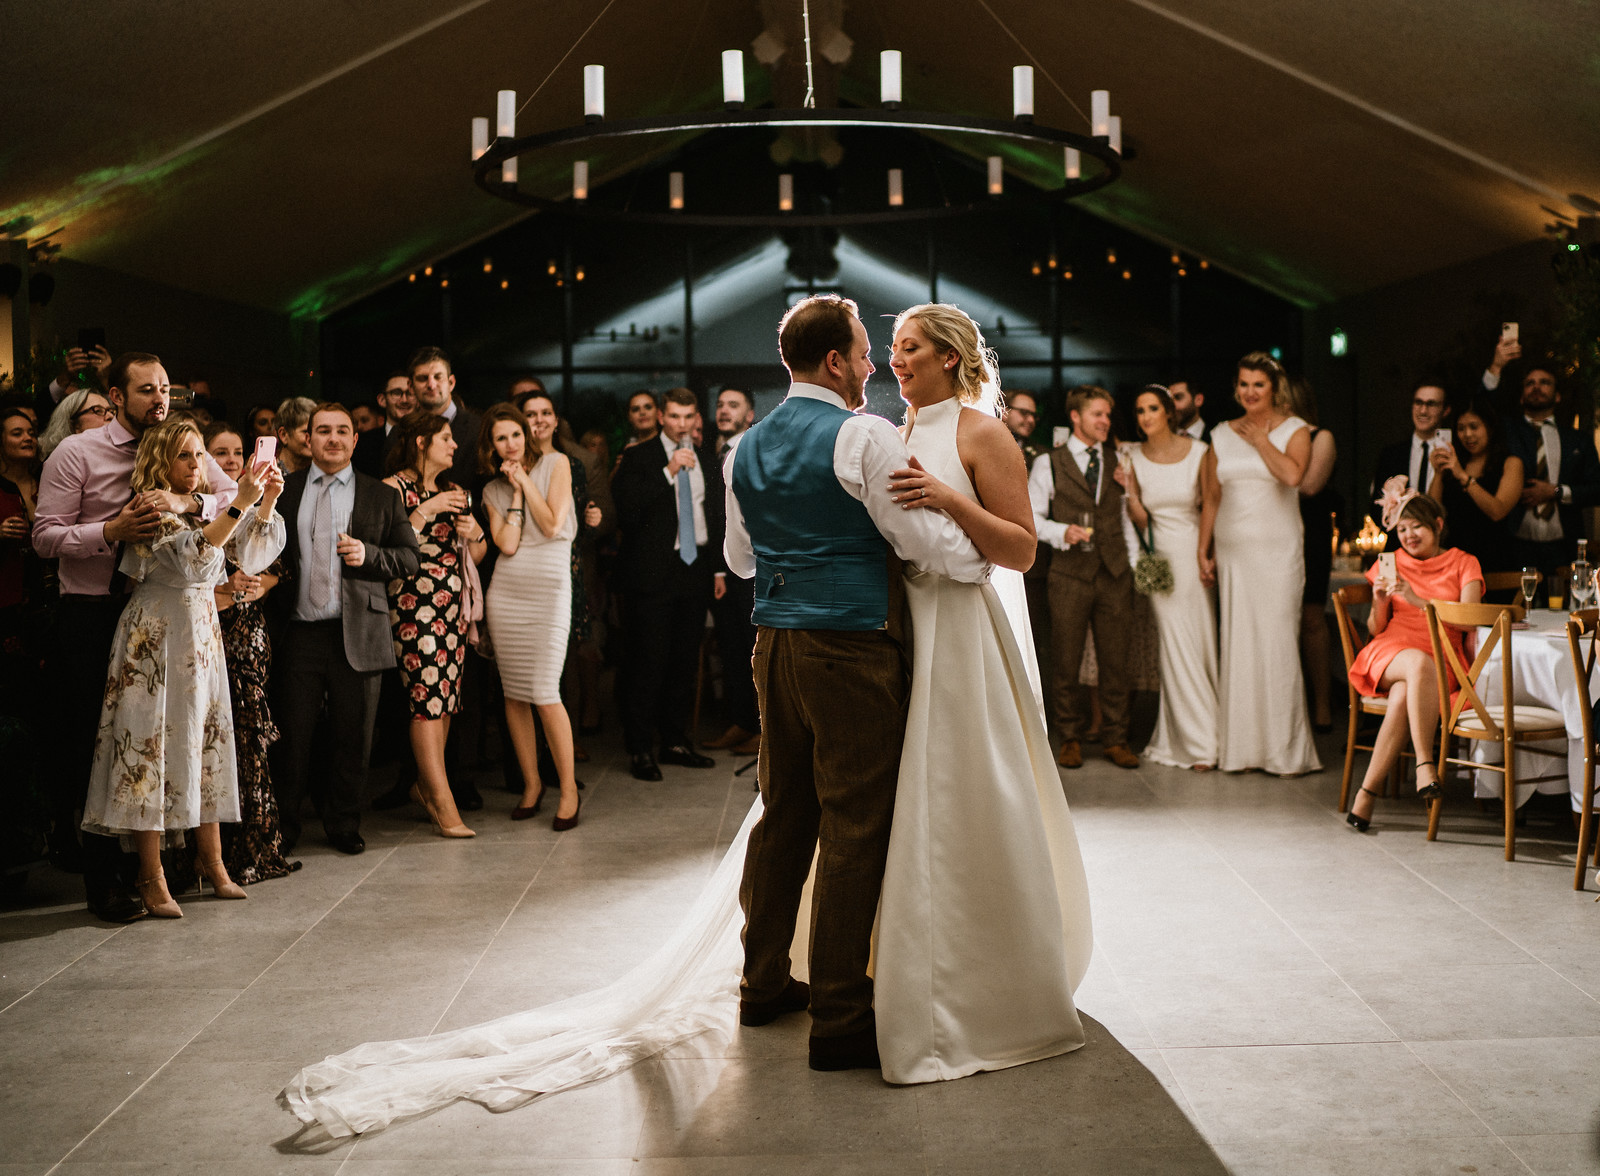 Bride and groom dance as family and friends watch| Unique wedding venue